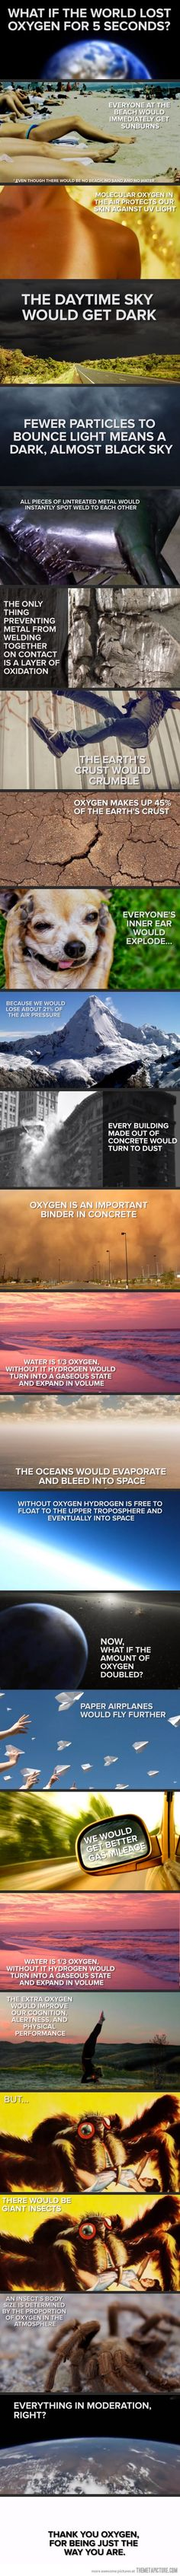 What if the world lost oxygen for 5 seconds? No idea if this is scientifically accurate or not, but lol